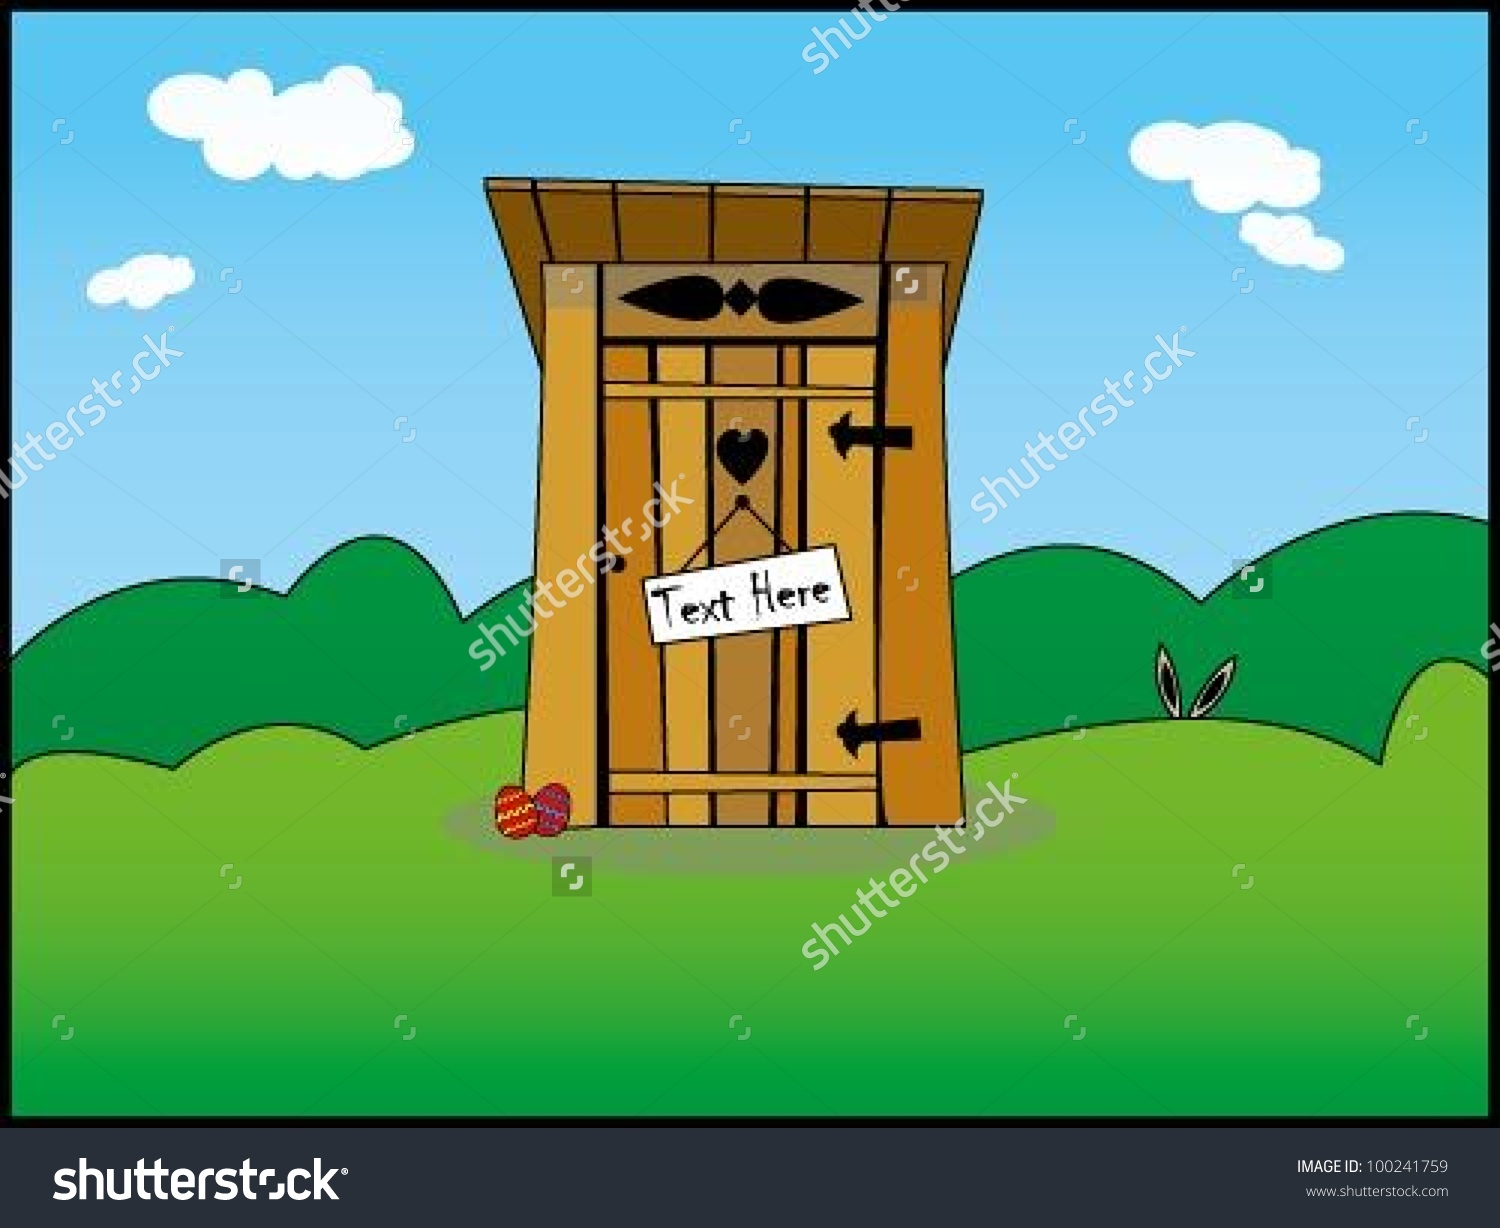 Old Wooden Toilet Illustration.